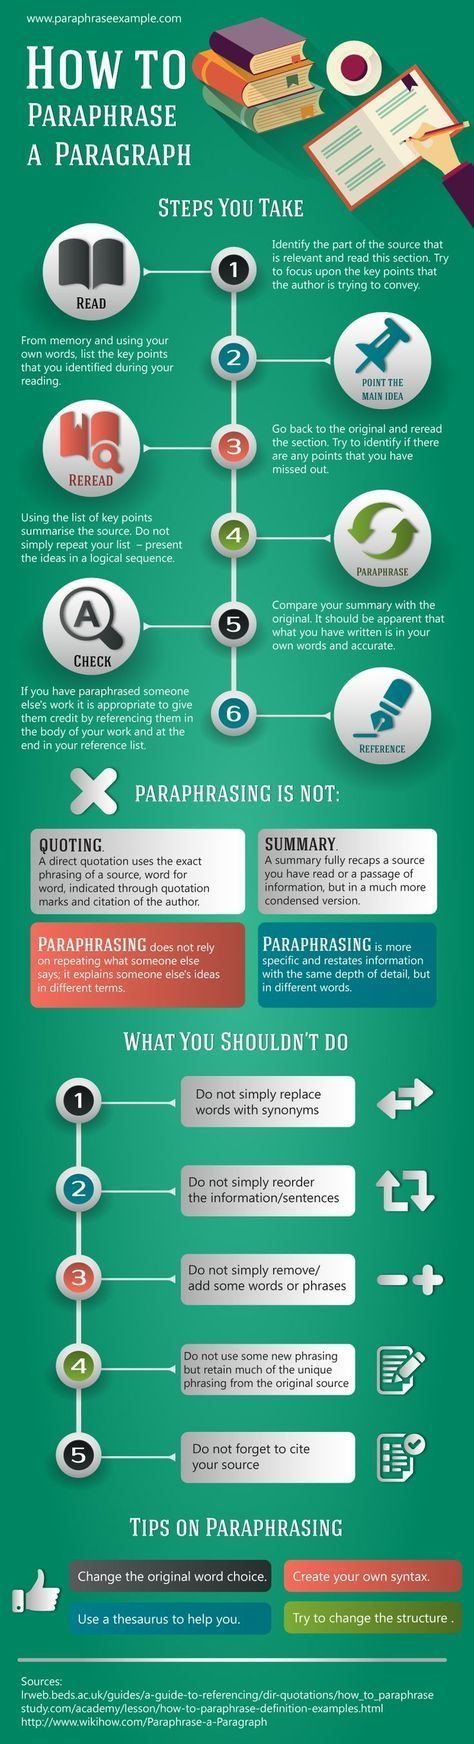 How To Paraphrase A Paragraph Infographic Teaching Writing Services Apa Cite Mutiple Sntence That Were Paraphrased